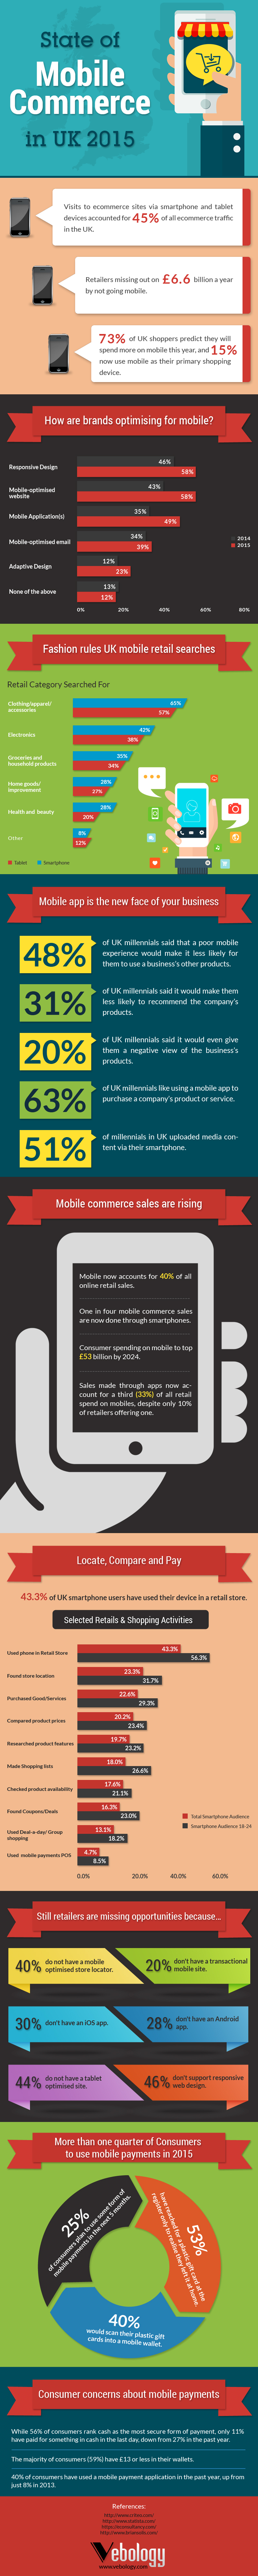 challenges of mobile commerce essay Mobile commerce - opportunities and challenges what are the main challenges and opportunities of mobile commerce that need to be overcome for mobile sales growth worldwide, b2c ecommerce sales are growing steadily and set to top the $15 trillion mark this year, and increasingly significant contributors to this enormous sum are mobile devices.